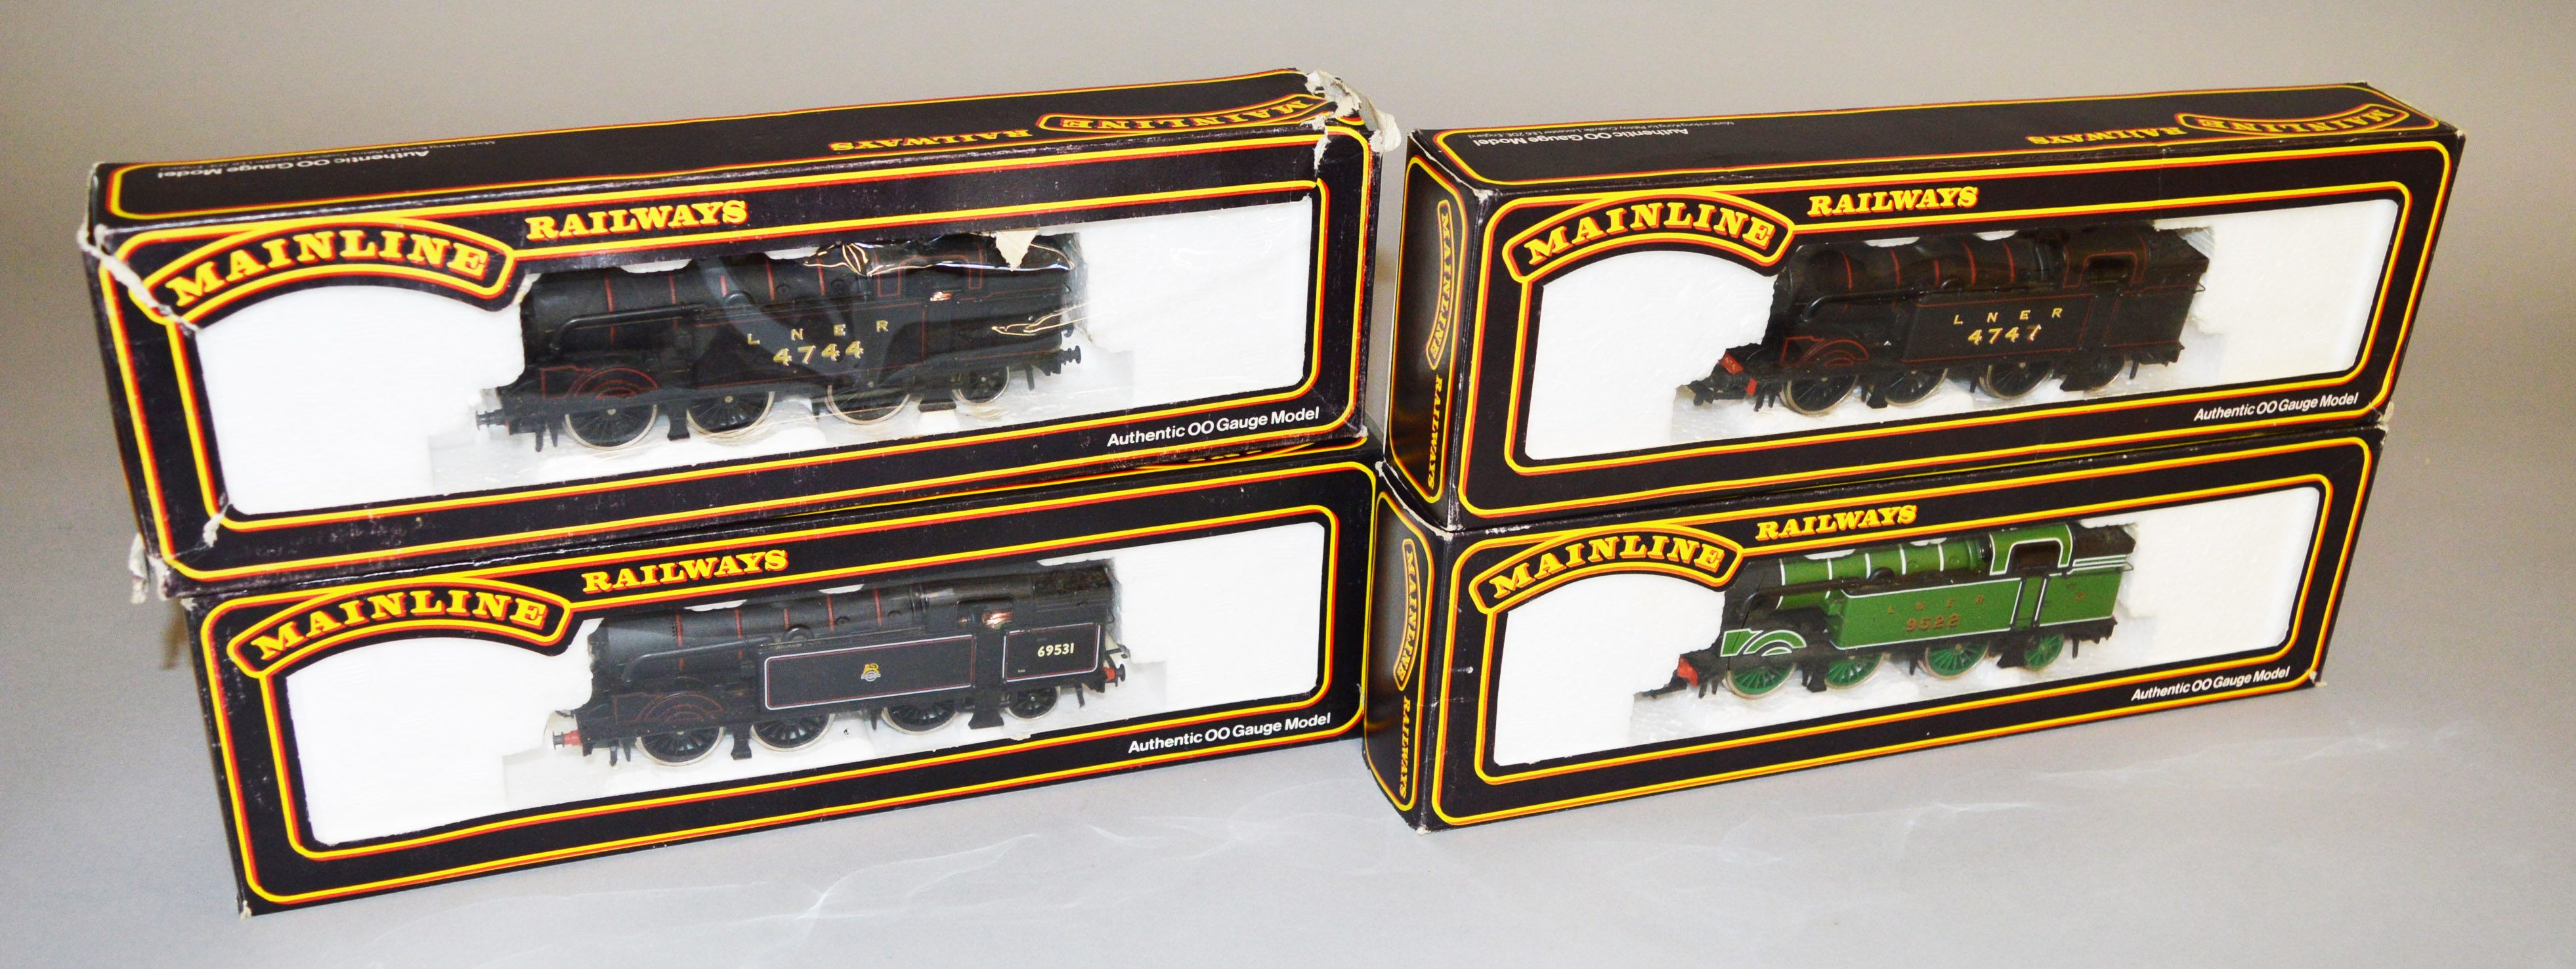 Lot 42 - OO Gauge. Four boxed 'Mainline' 0-6-2T Locomotives, including #54155 N2 Class BR Black Lined Livery.